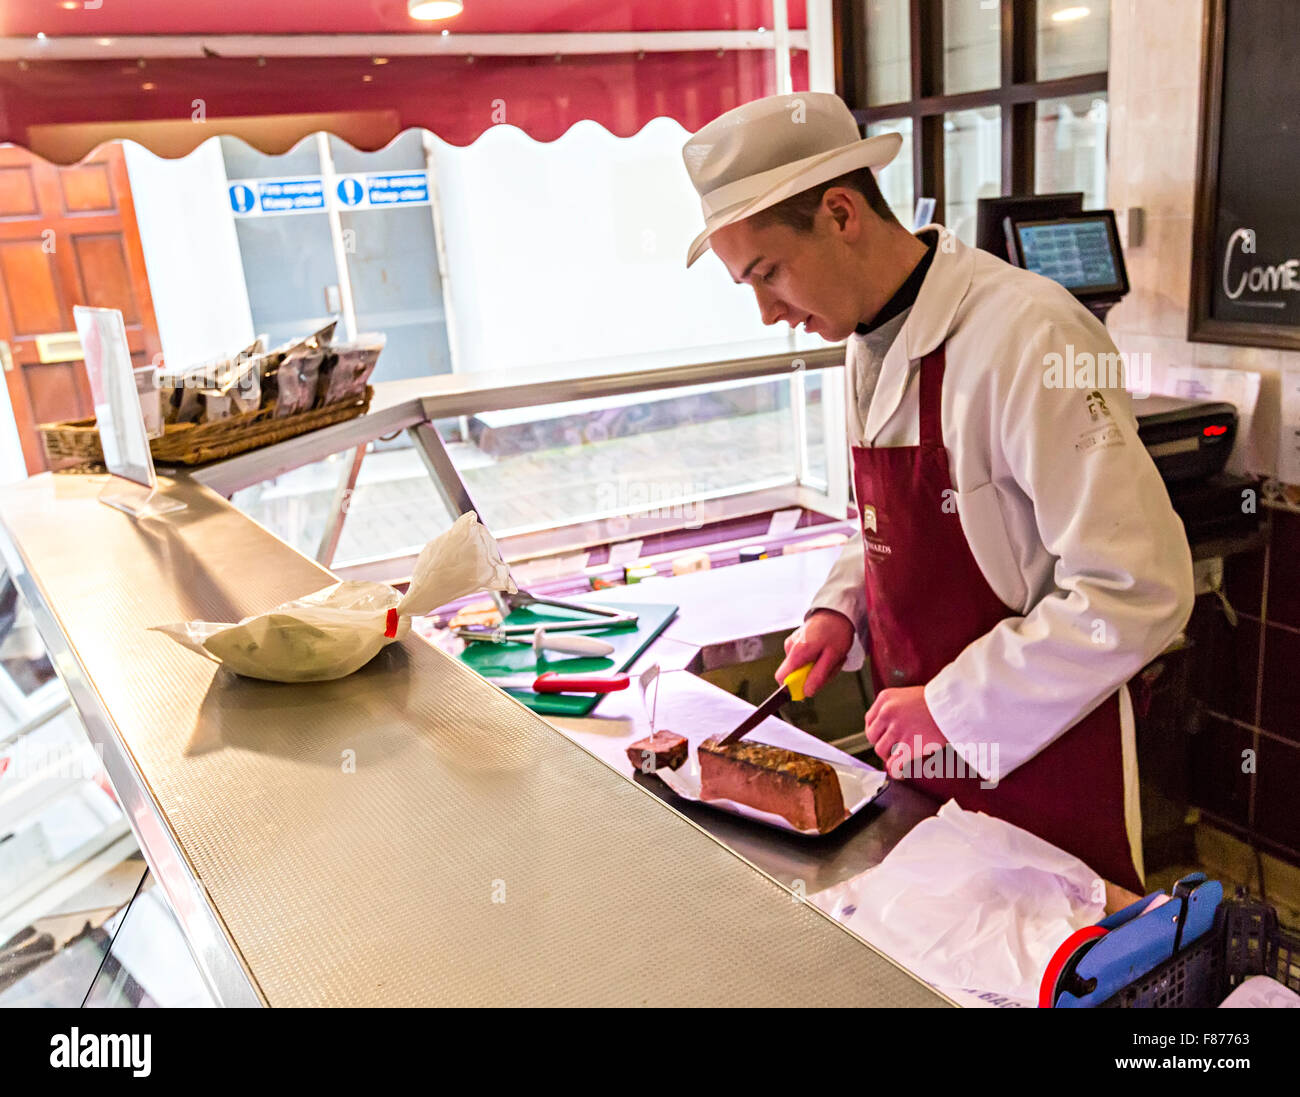 Butcher cutting pate from block, Abergavenny, Wales, UK - Stock Image